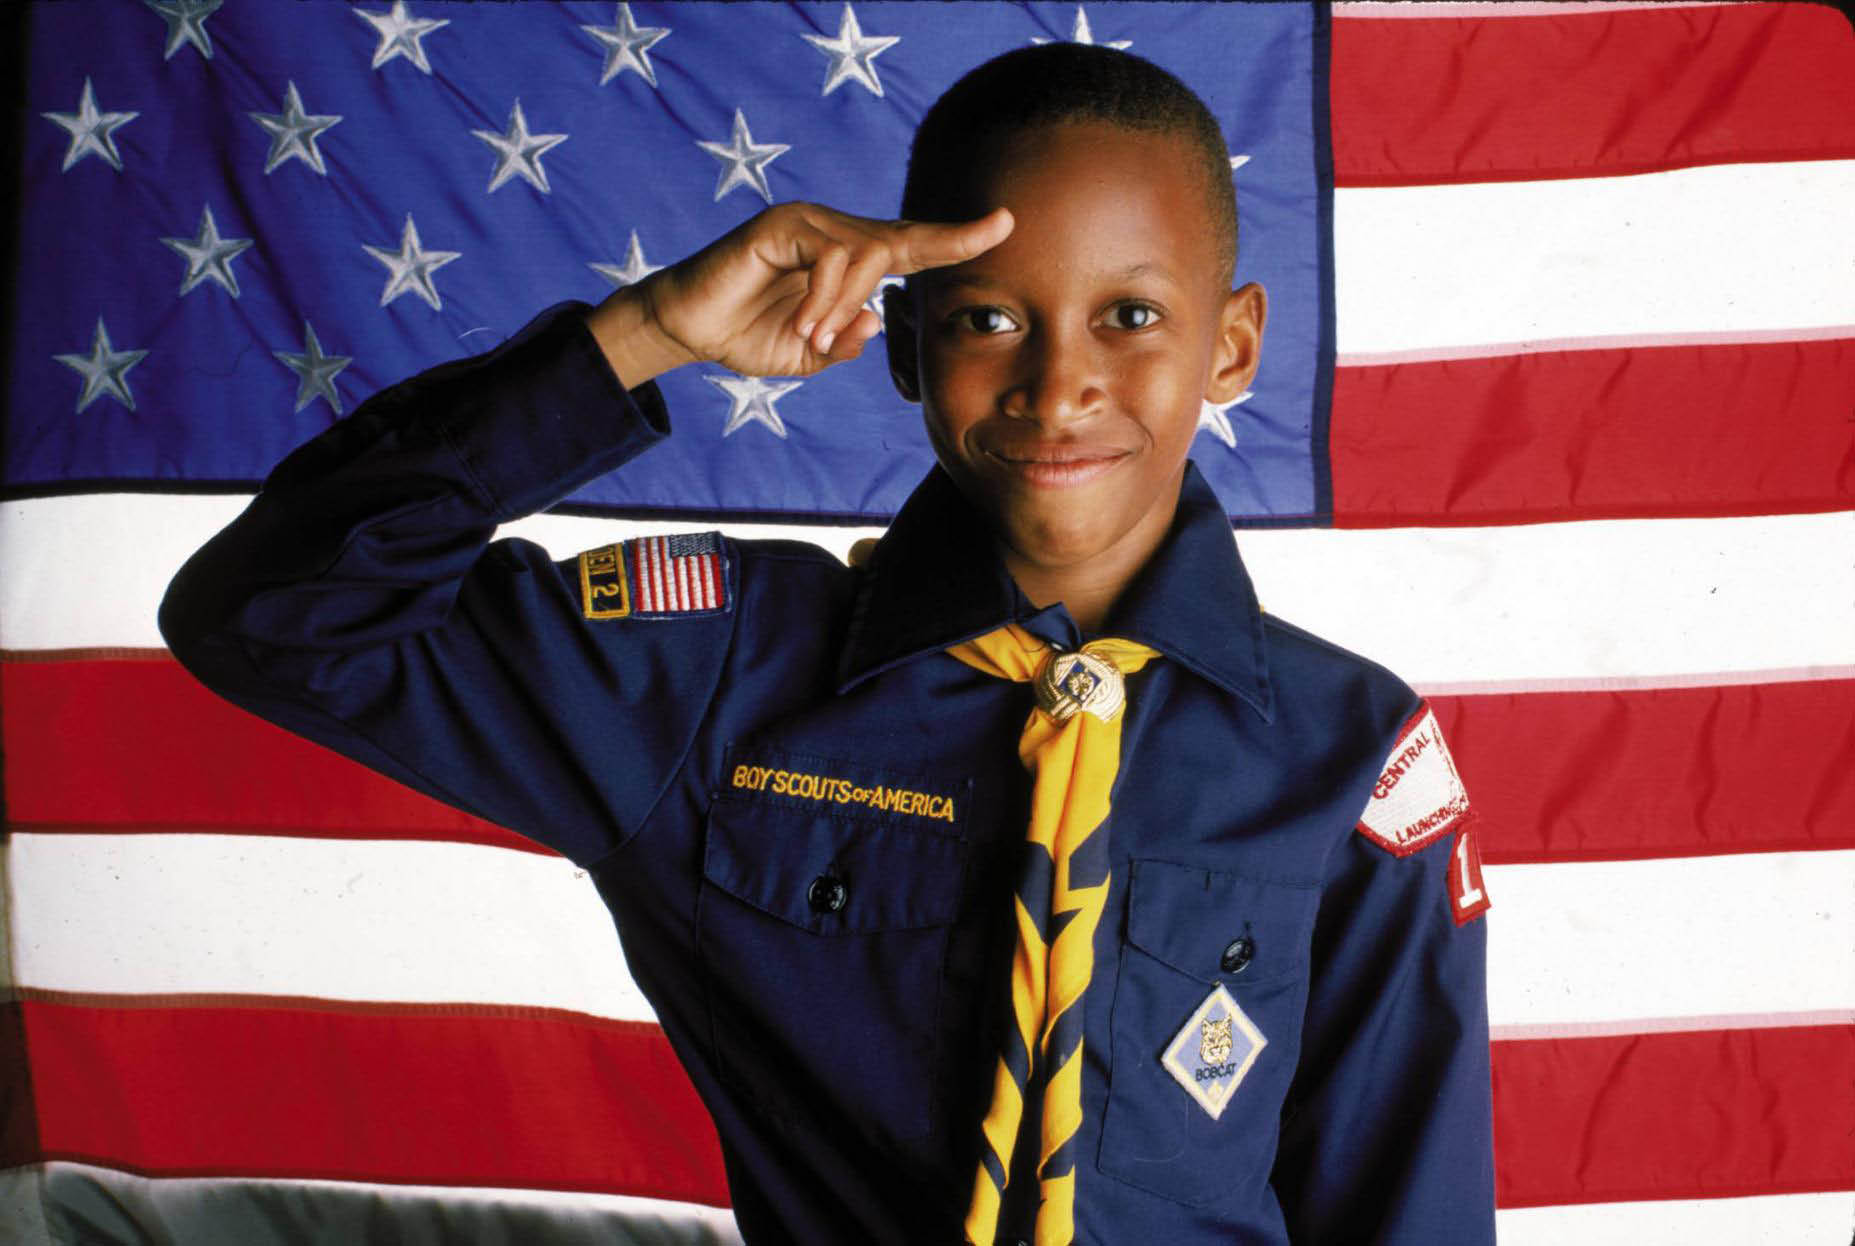 cub scouts, boy scouts, eagle scout, adventure, club, volunteer; bethesda, md